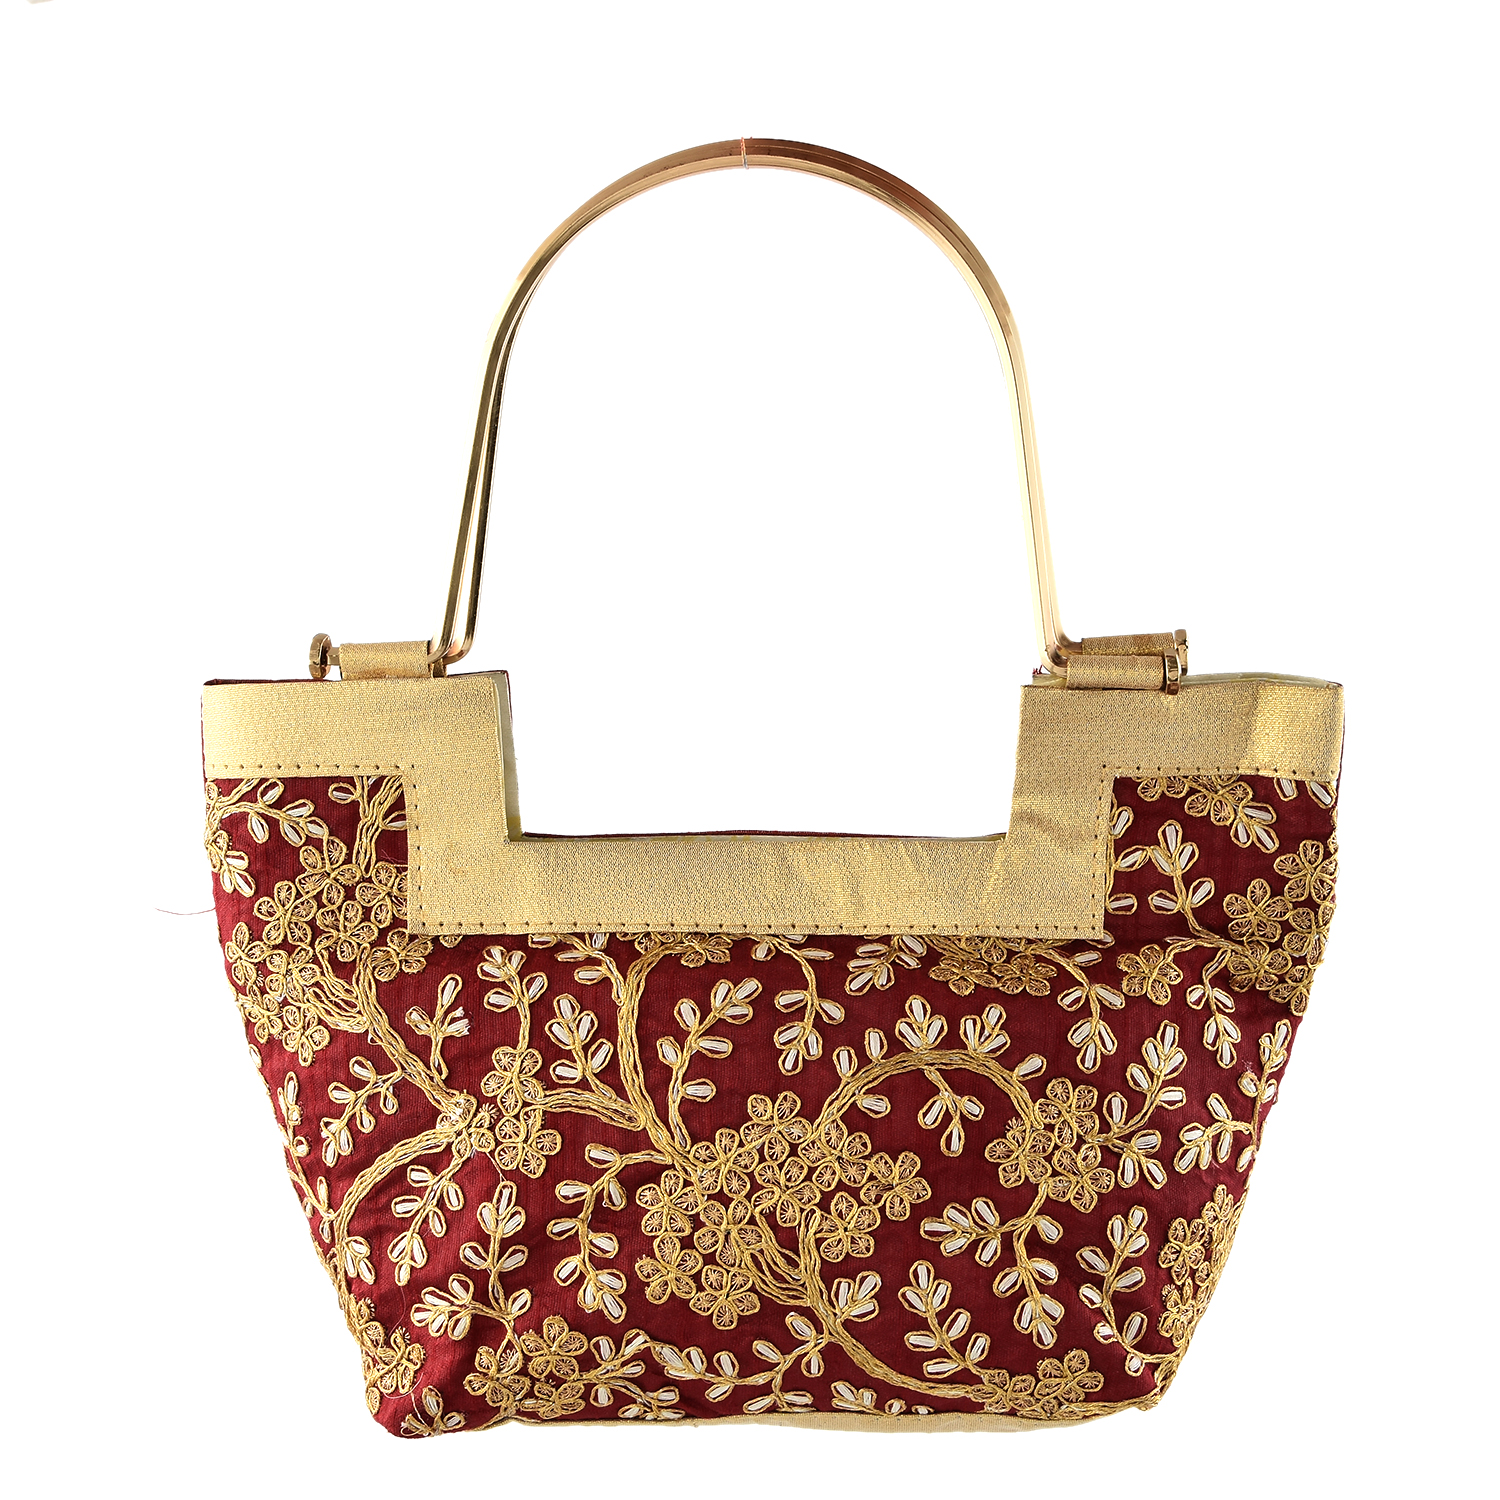 Kuber Industries Handcrafted Embroidered 2 Pieces Party Wear Clutch Bag Purse Handbag For Bridal, Casual, Party, Wedding, Metal Handle (Maroon & Cream)